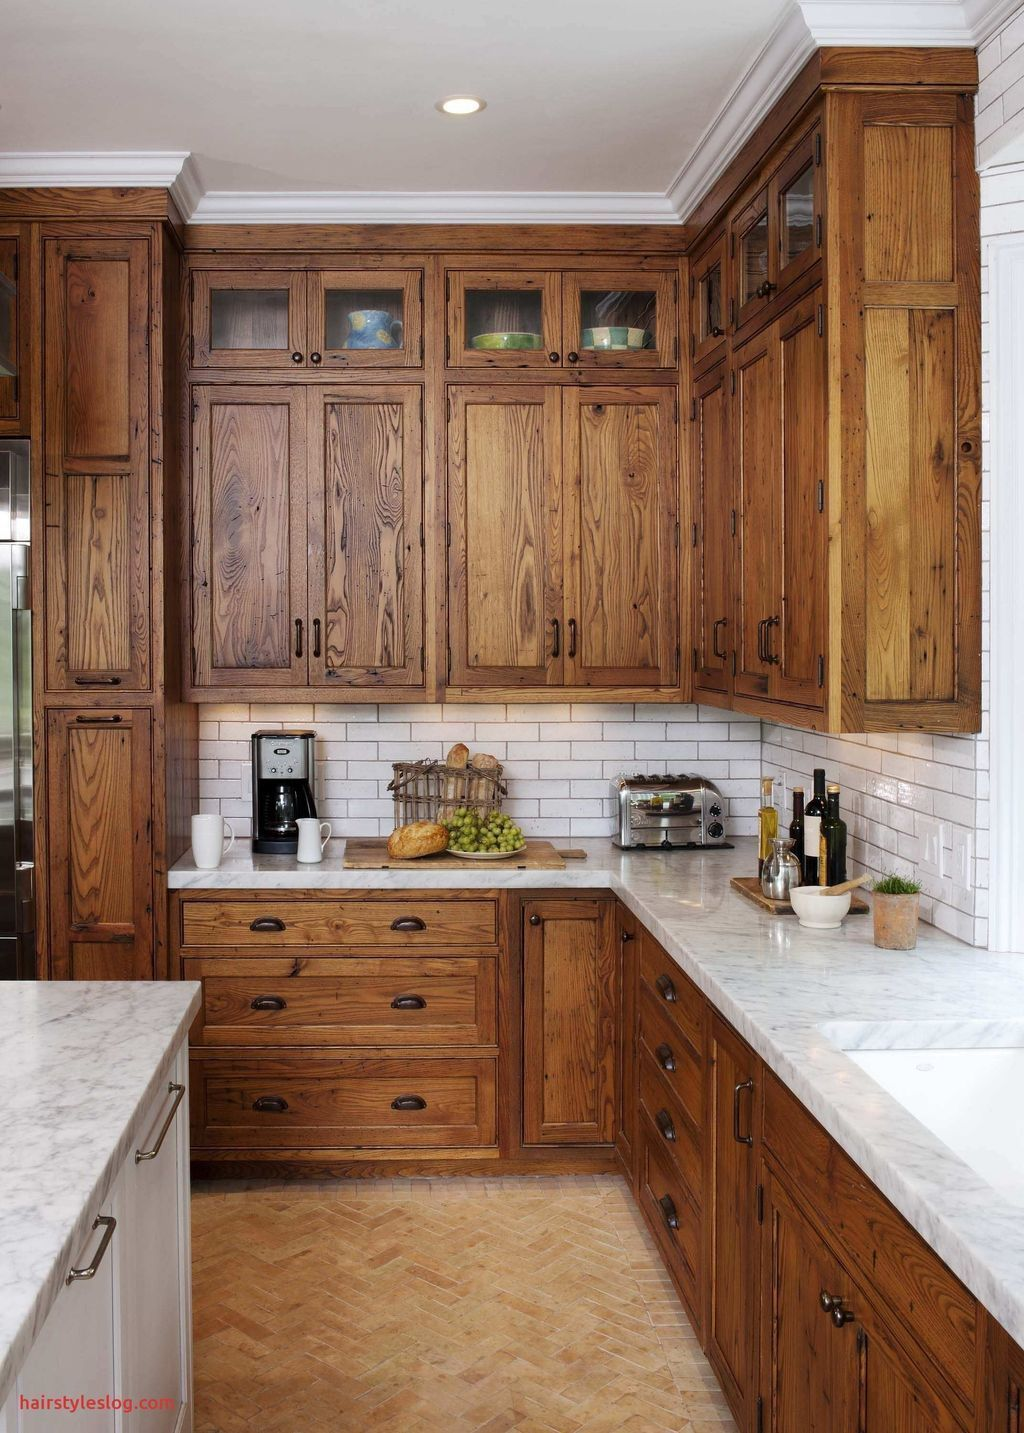 33 Nice Rustic Farmhouse Kitchen Cabinets Design Ideas Country Kitchen Cabinets Determine De In 2020 Stained Kitchen Cabinets Hickory Kitchen Cabinets Rustic Kitchen